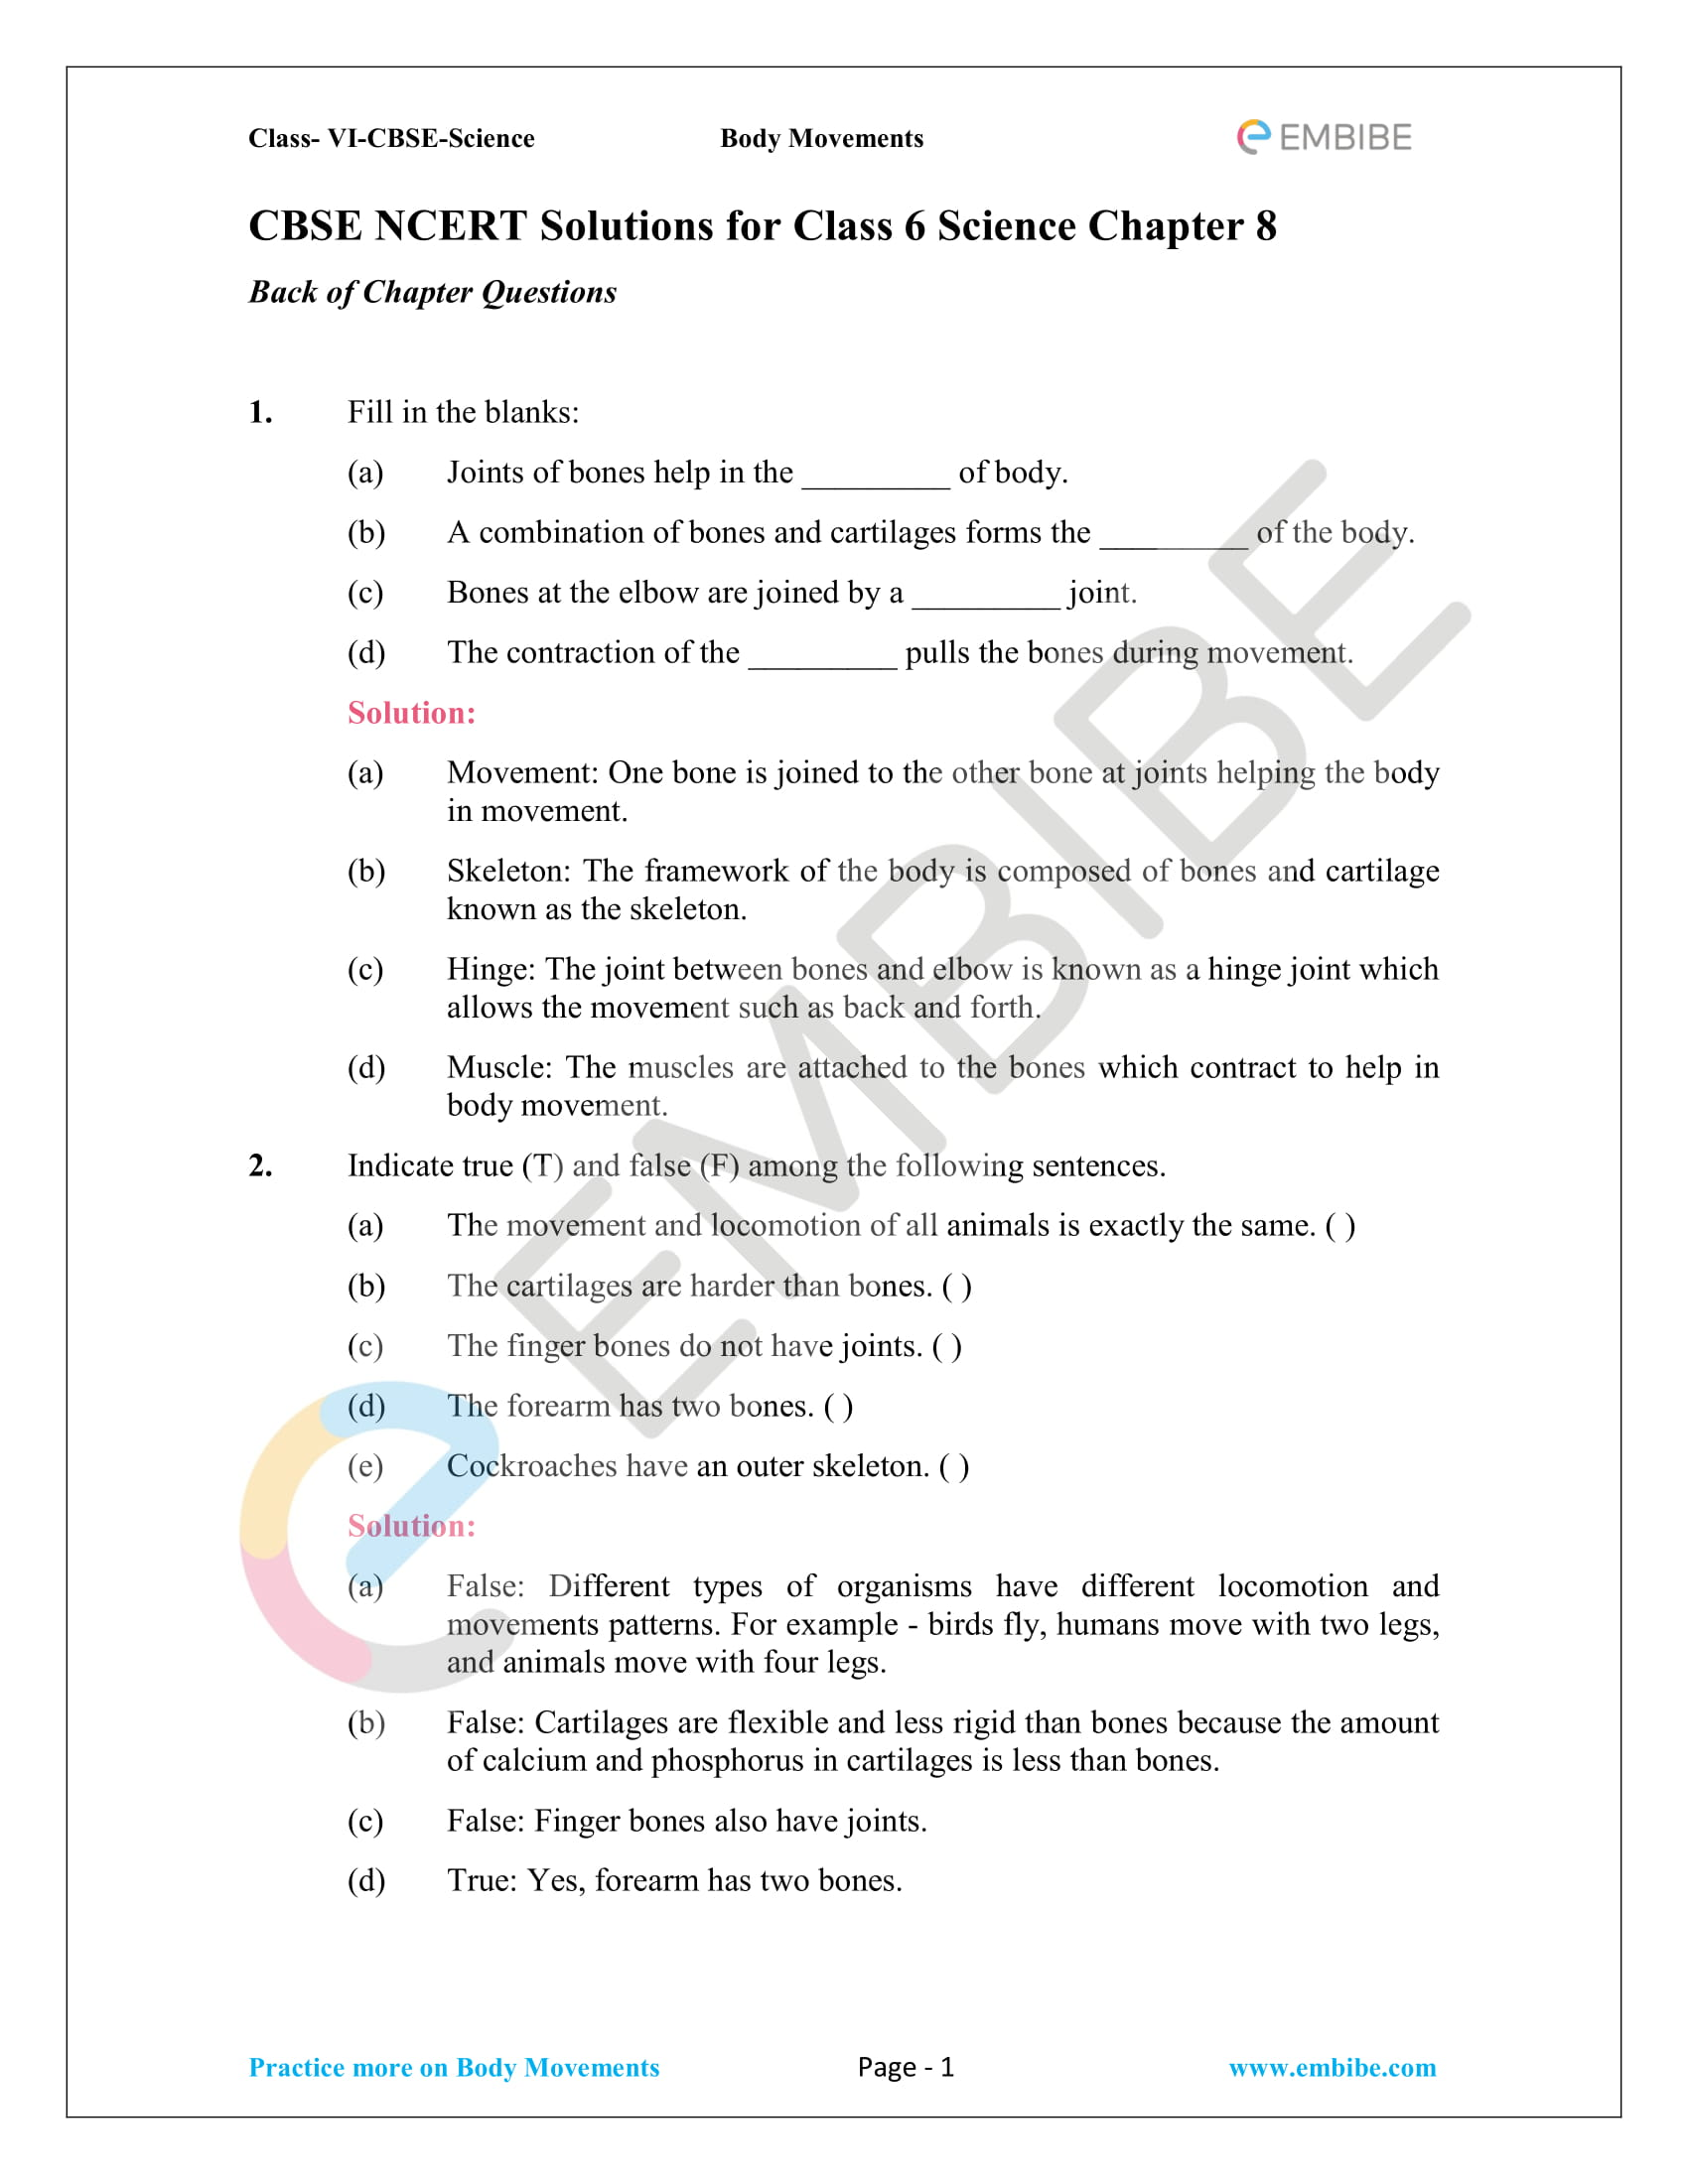 NCERT Solutions For Class 6 Science Chapter 8